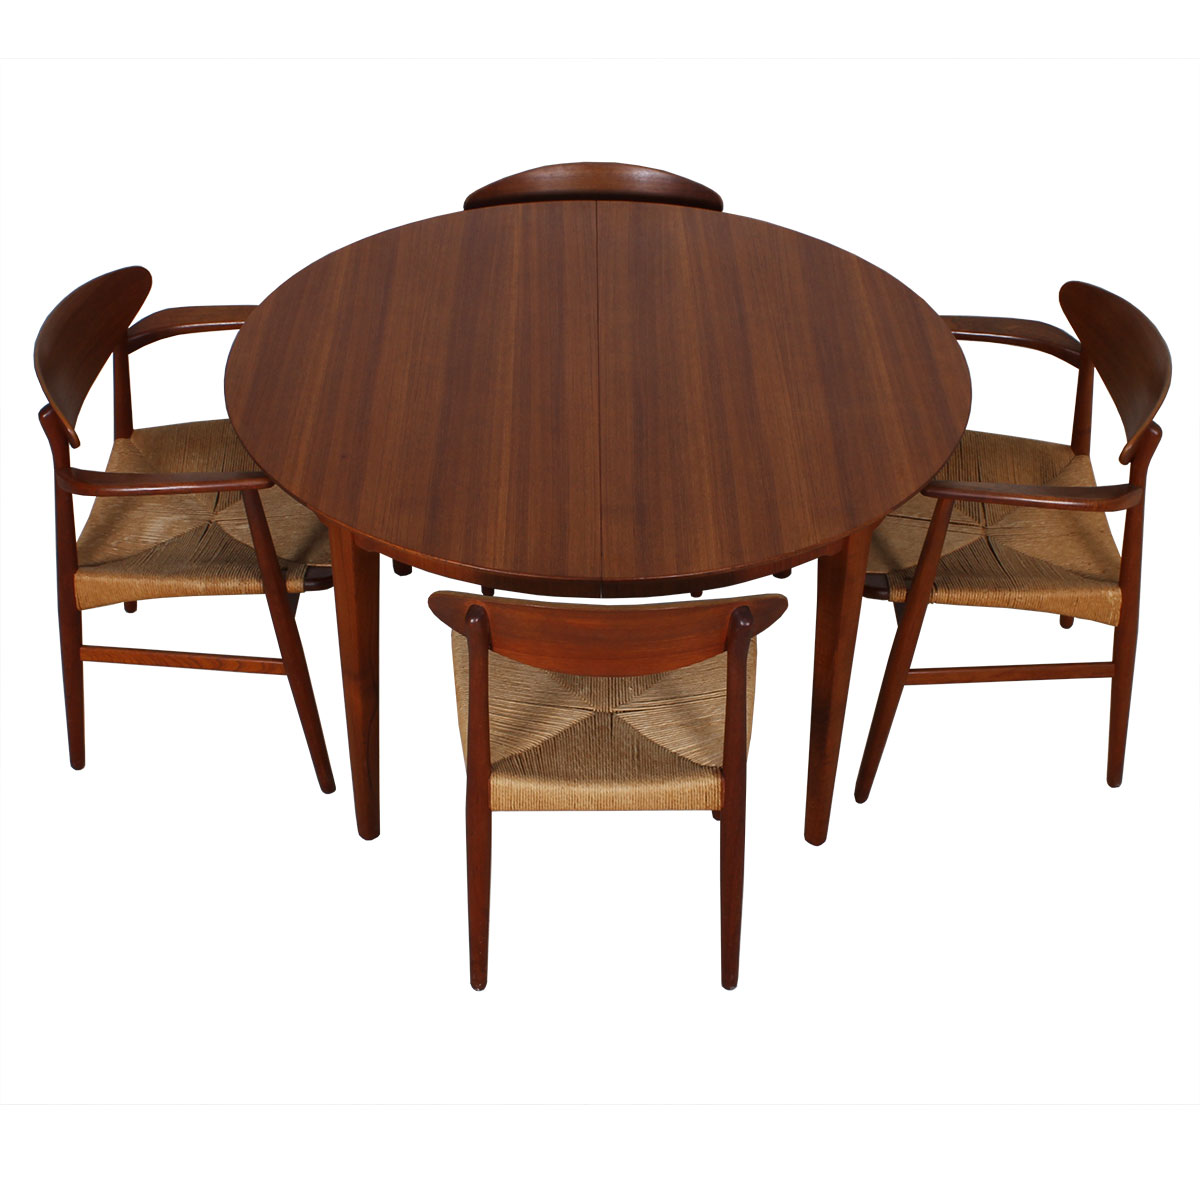 Super Expanding Round to Oval Danish Teak Table w/ 4 Leaves!